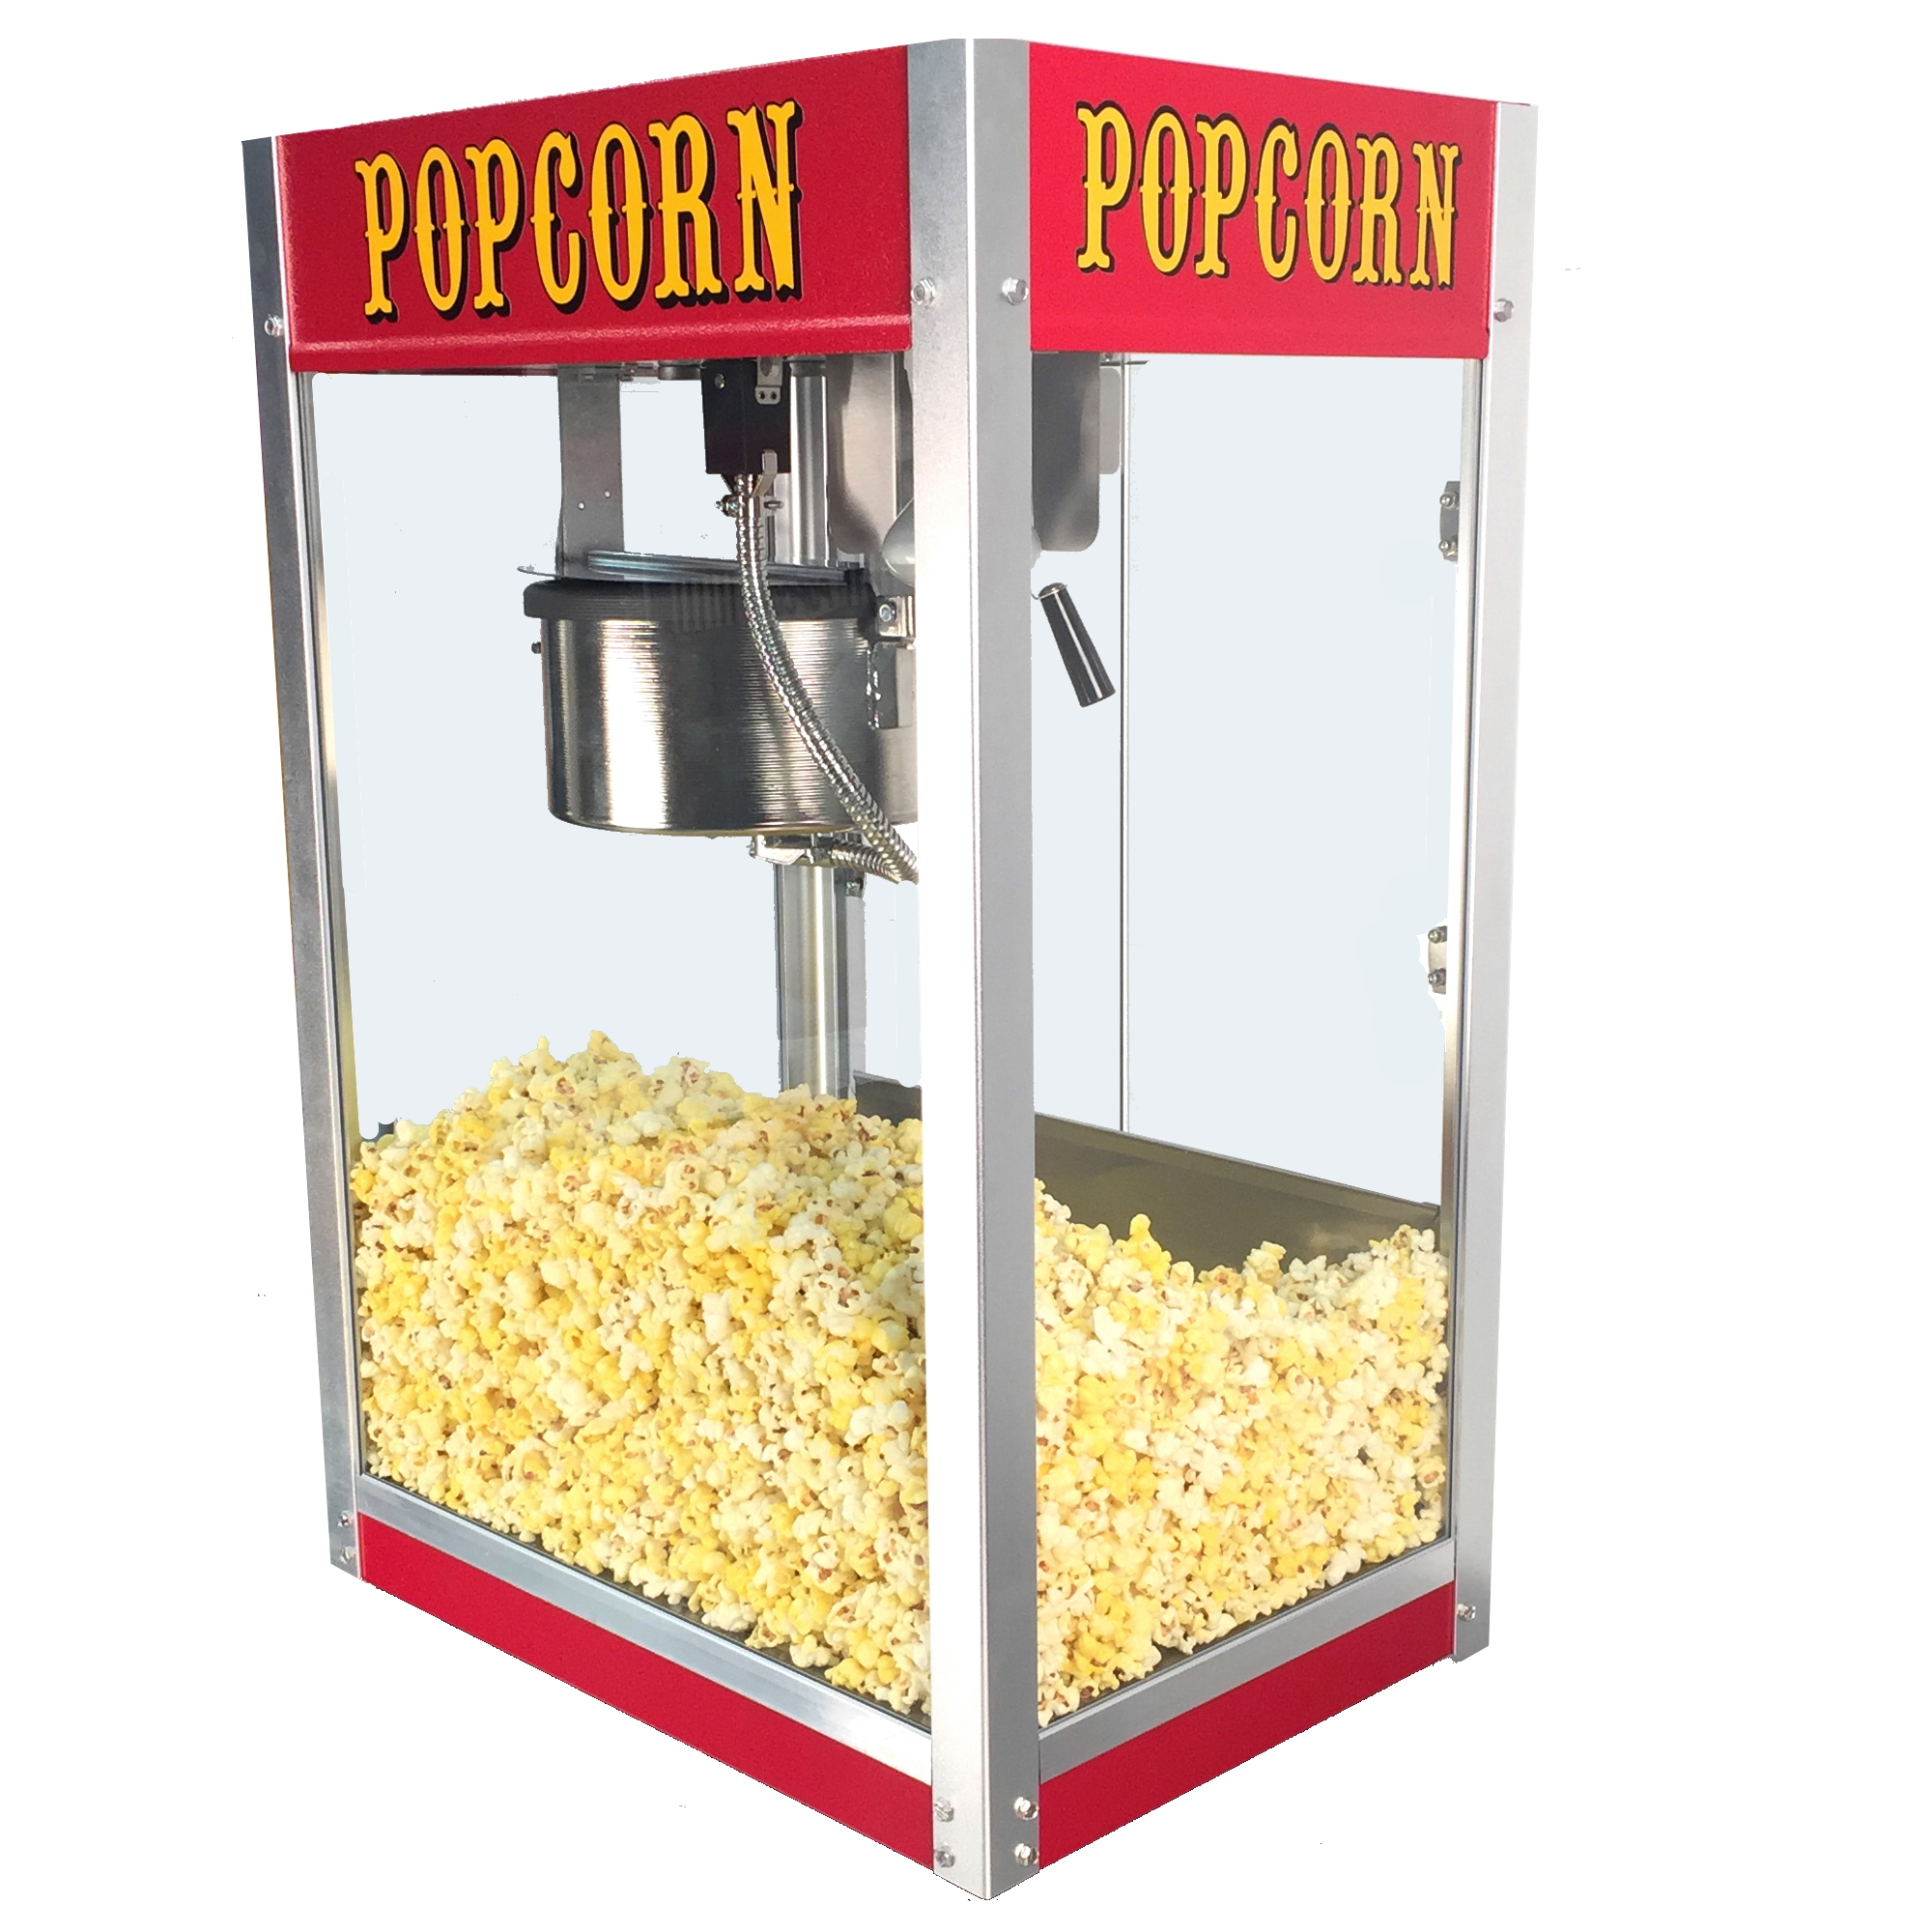 Paragon Theater Pop 8 Ounce Popper Popcorn Machine